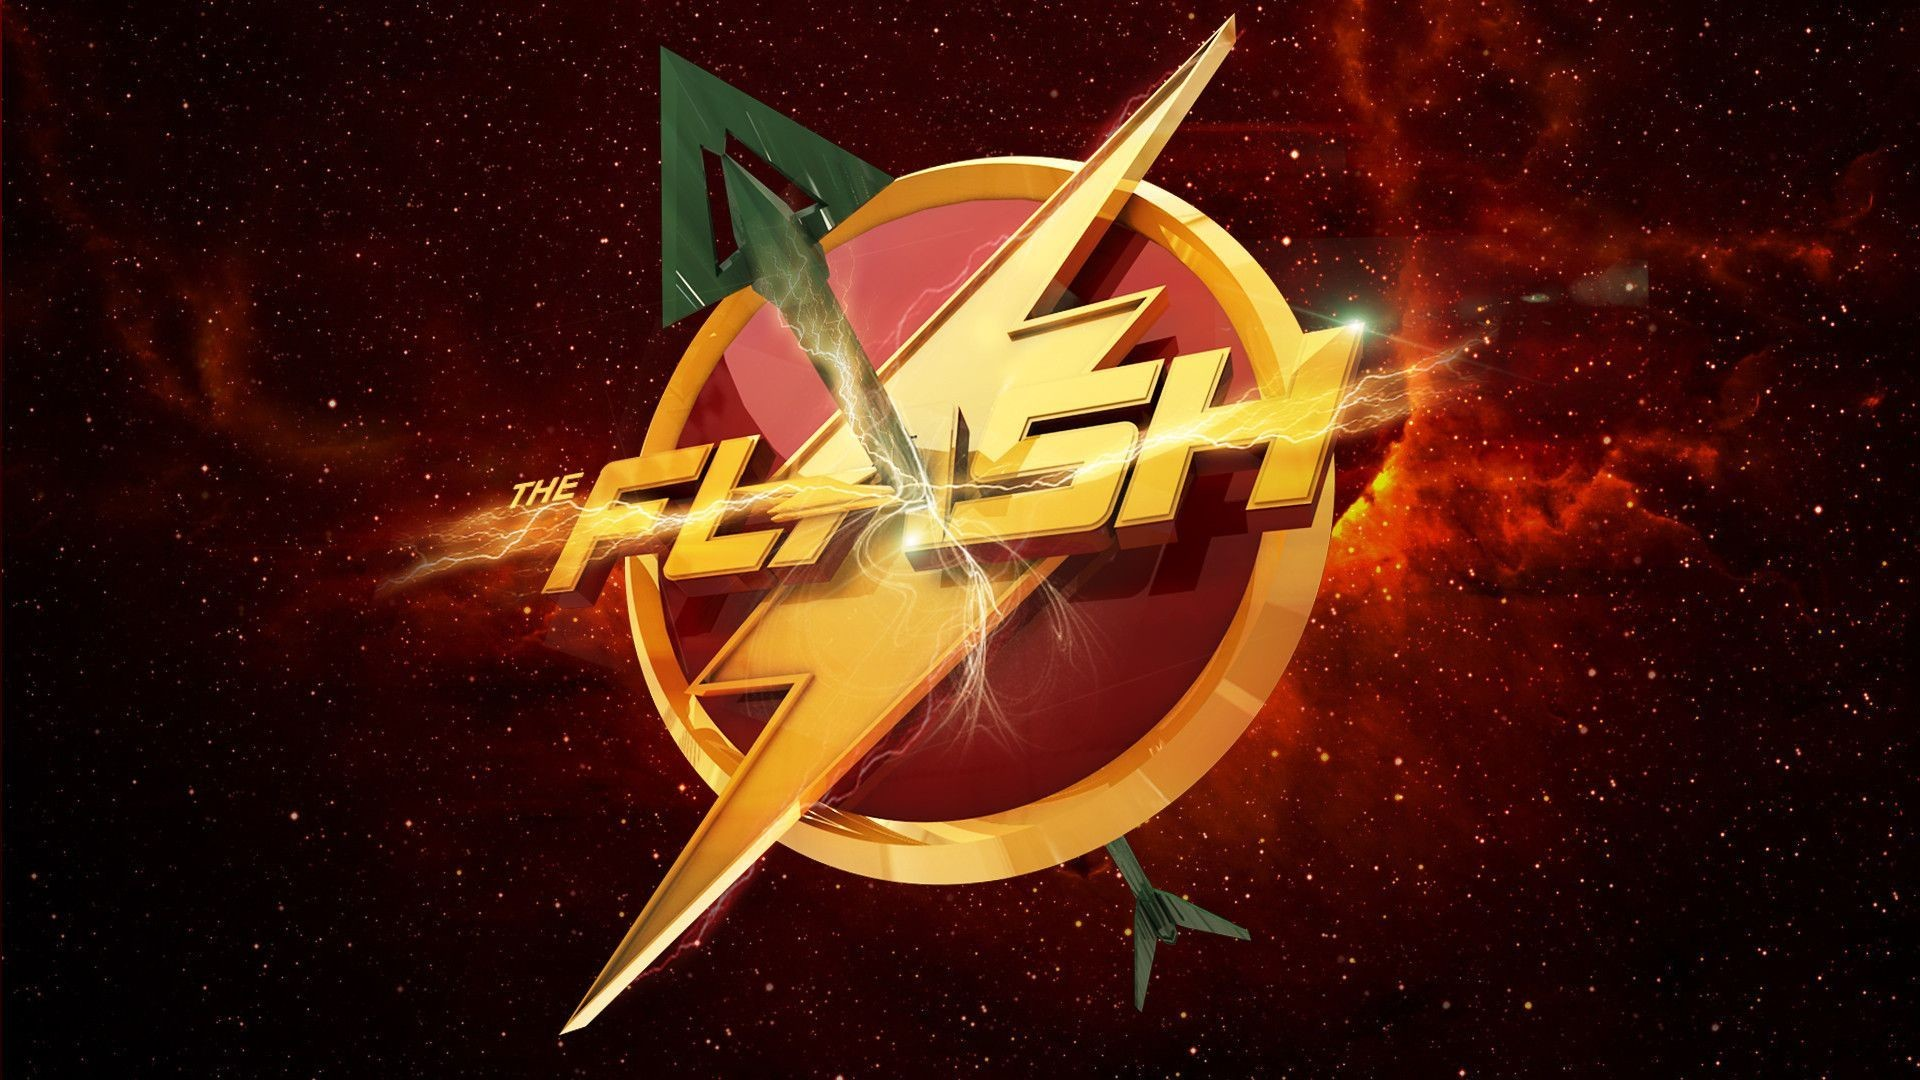 The Flash Wallpapers • TrumpWallpapers